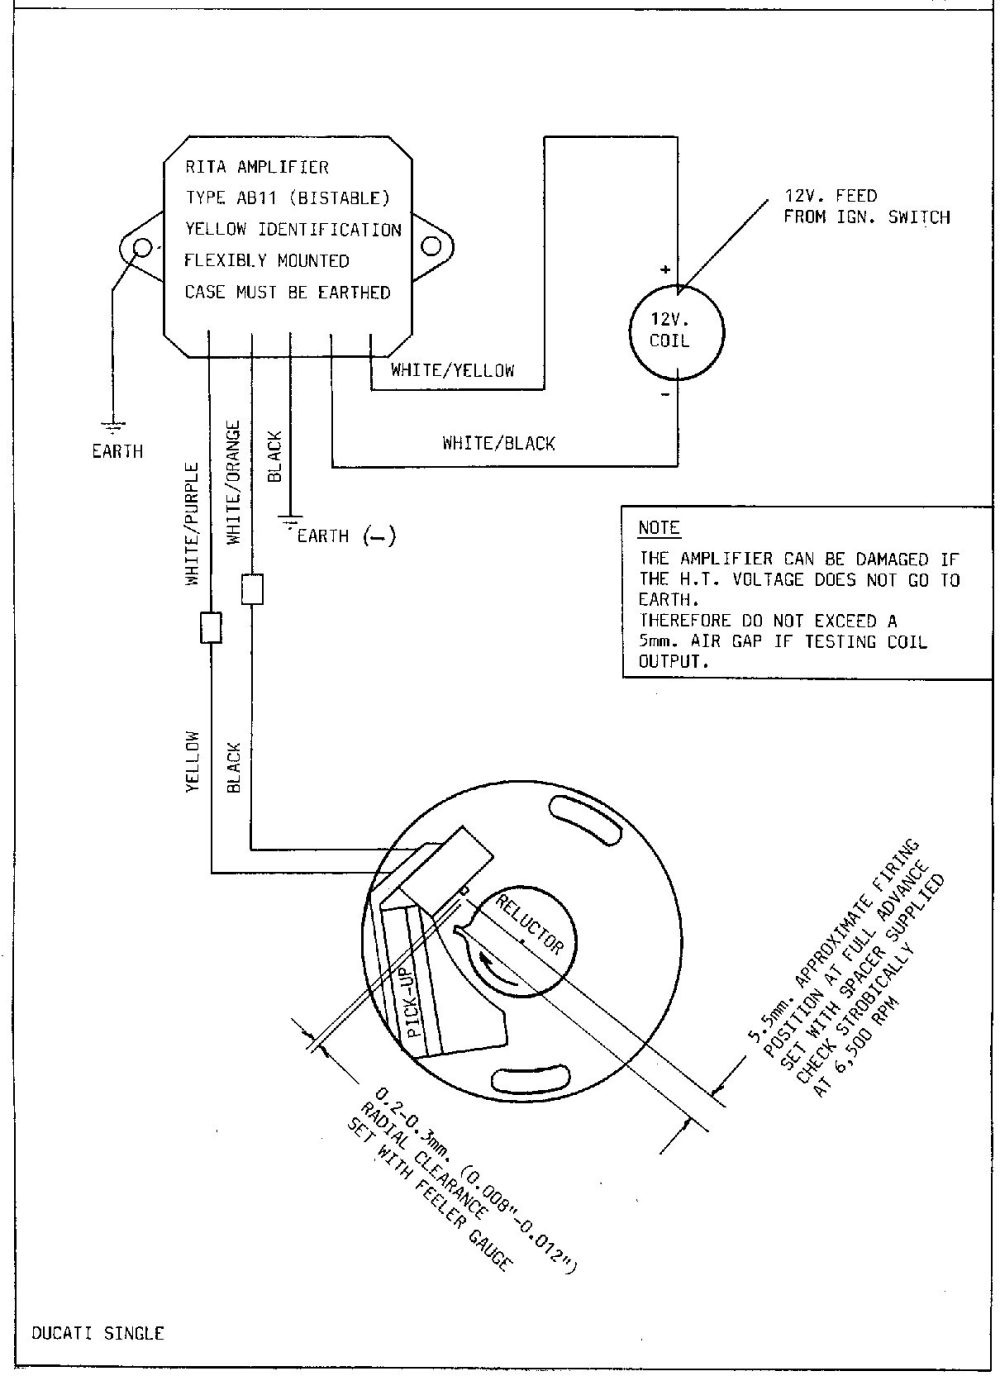 medium resolution of diagram for installing the lr132 rita ignition ducati single